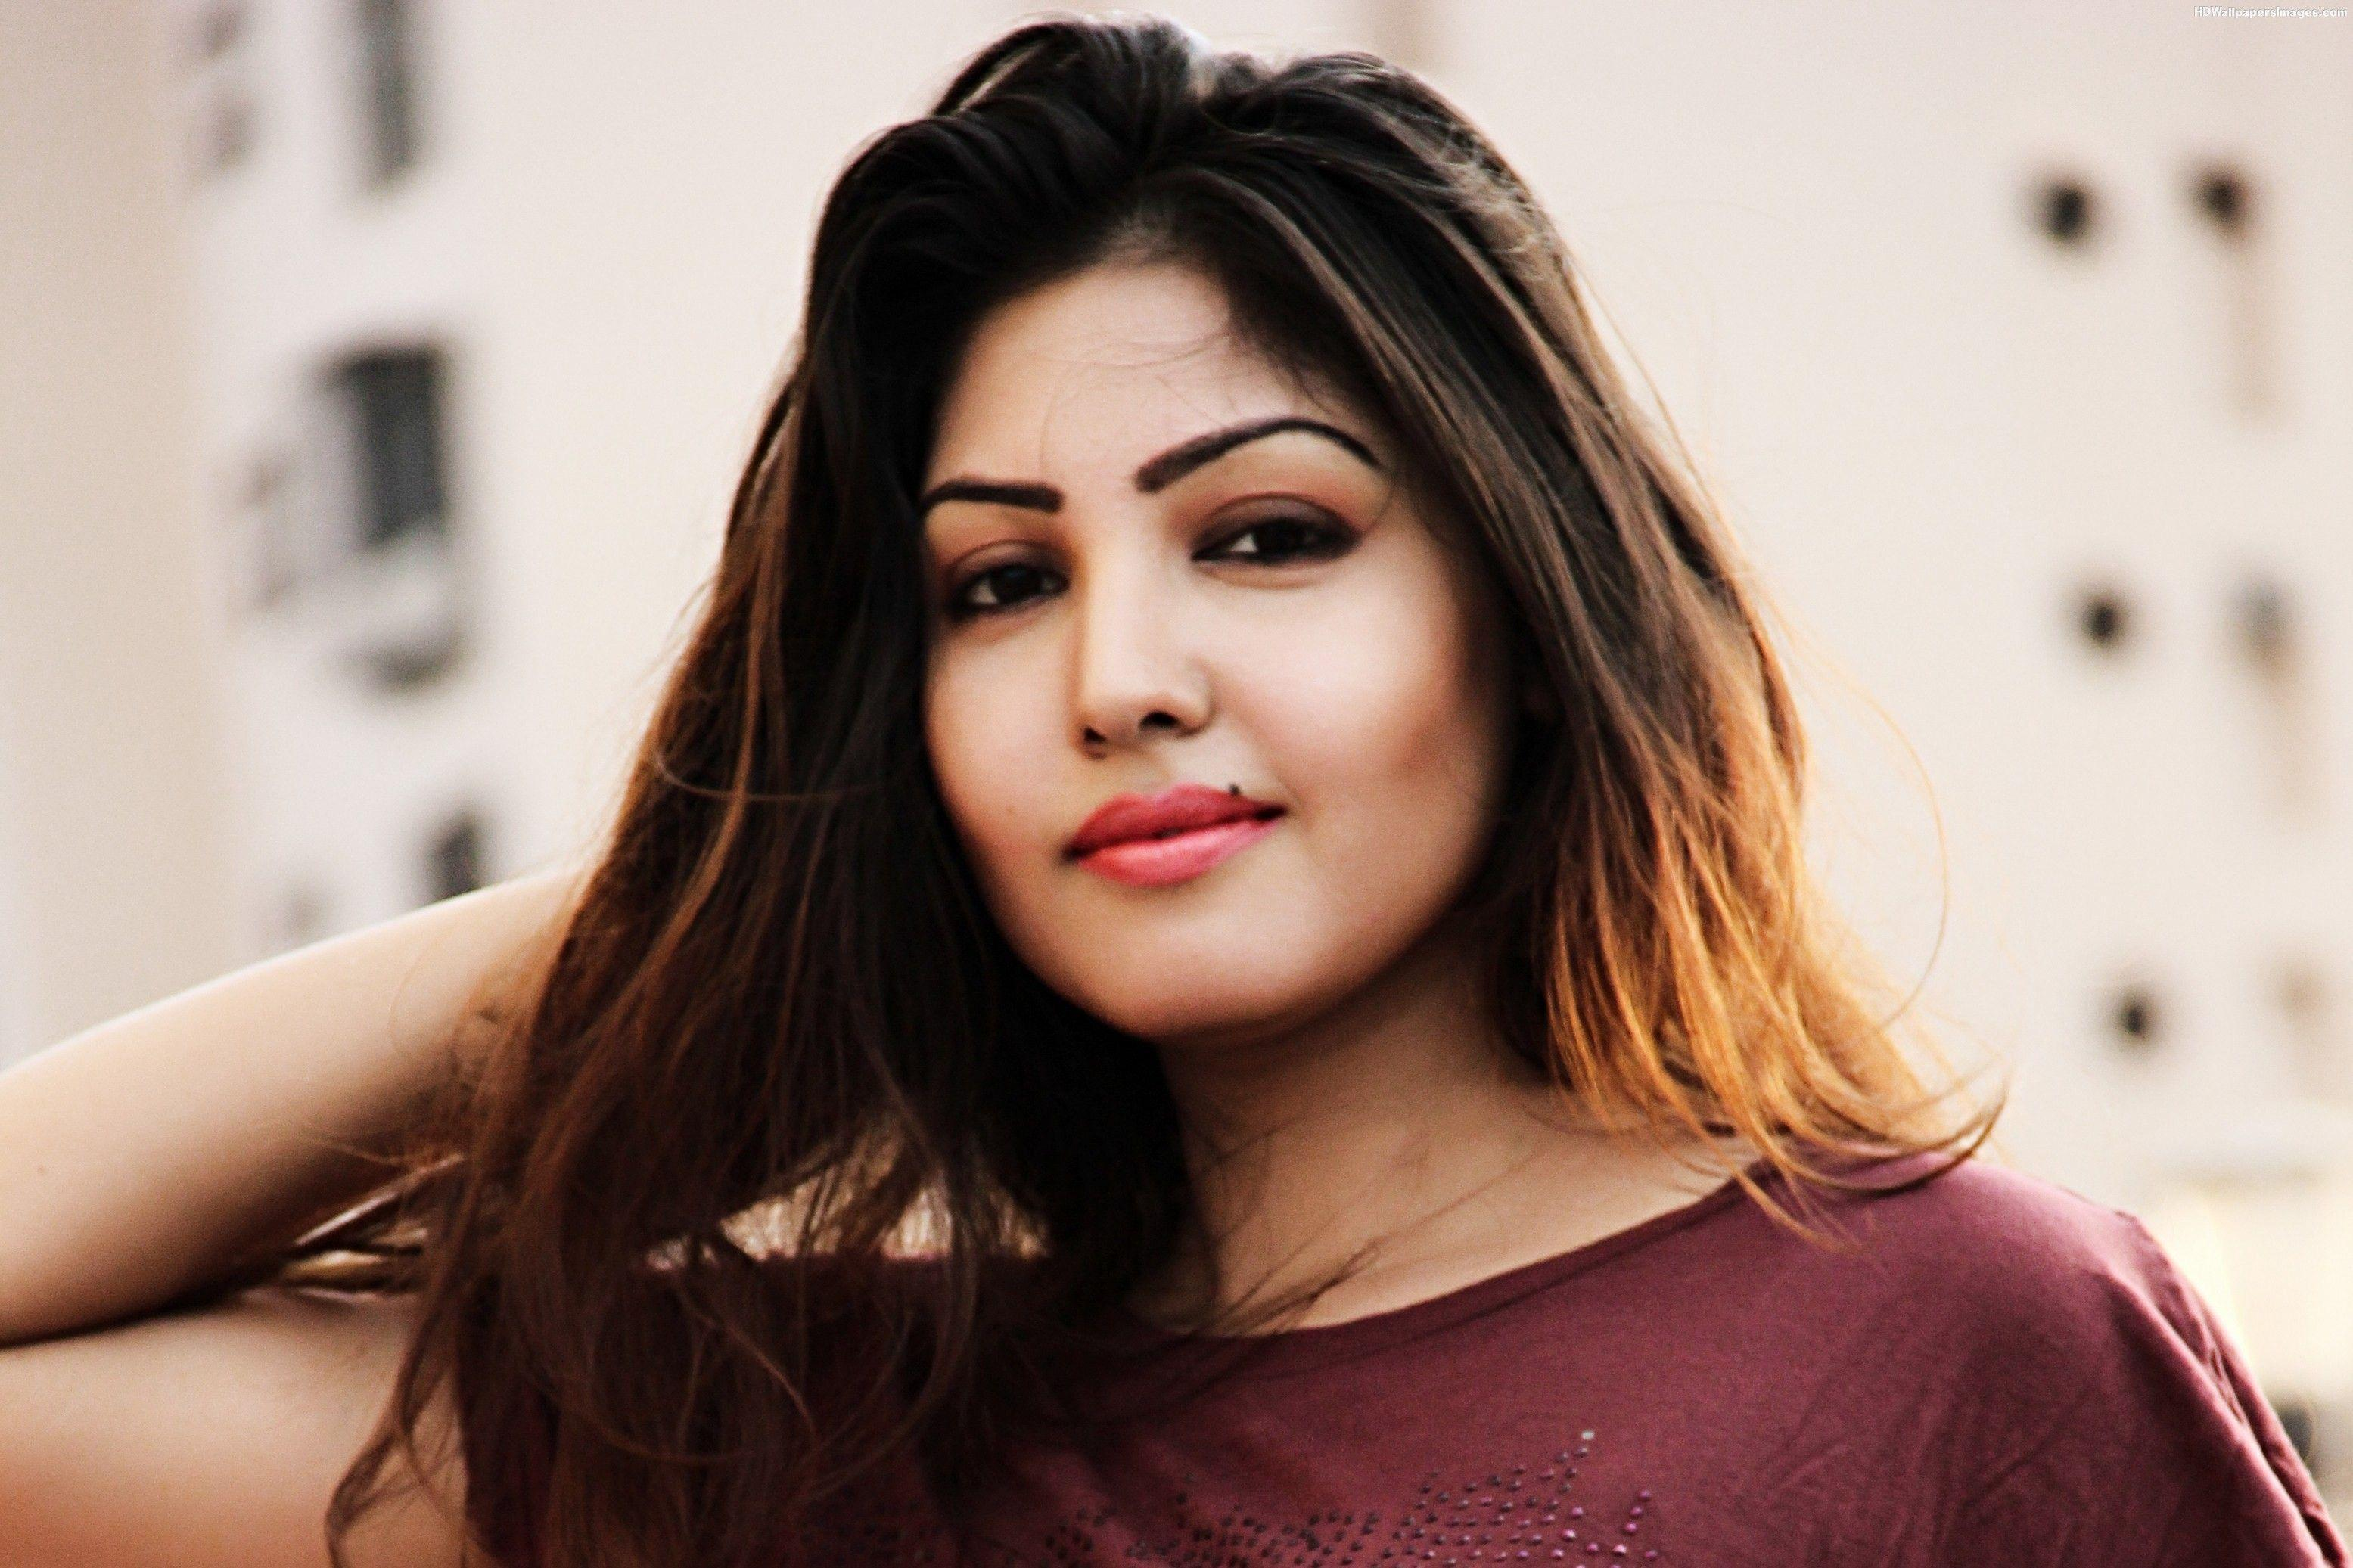 komal jha hd wallpaper - photo #39